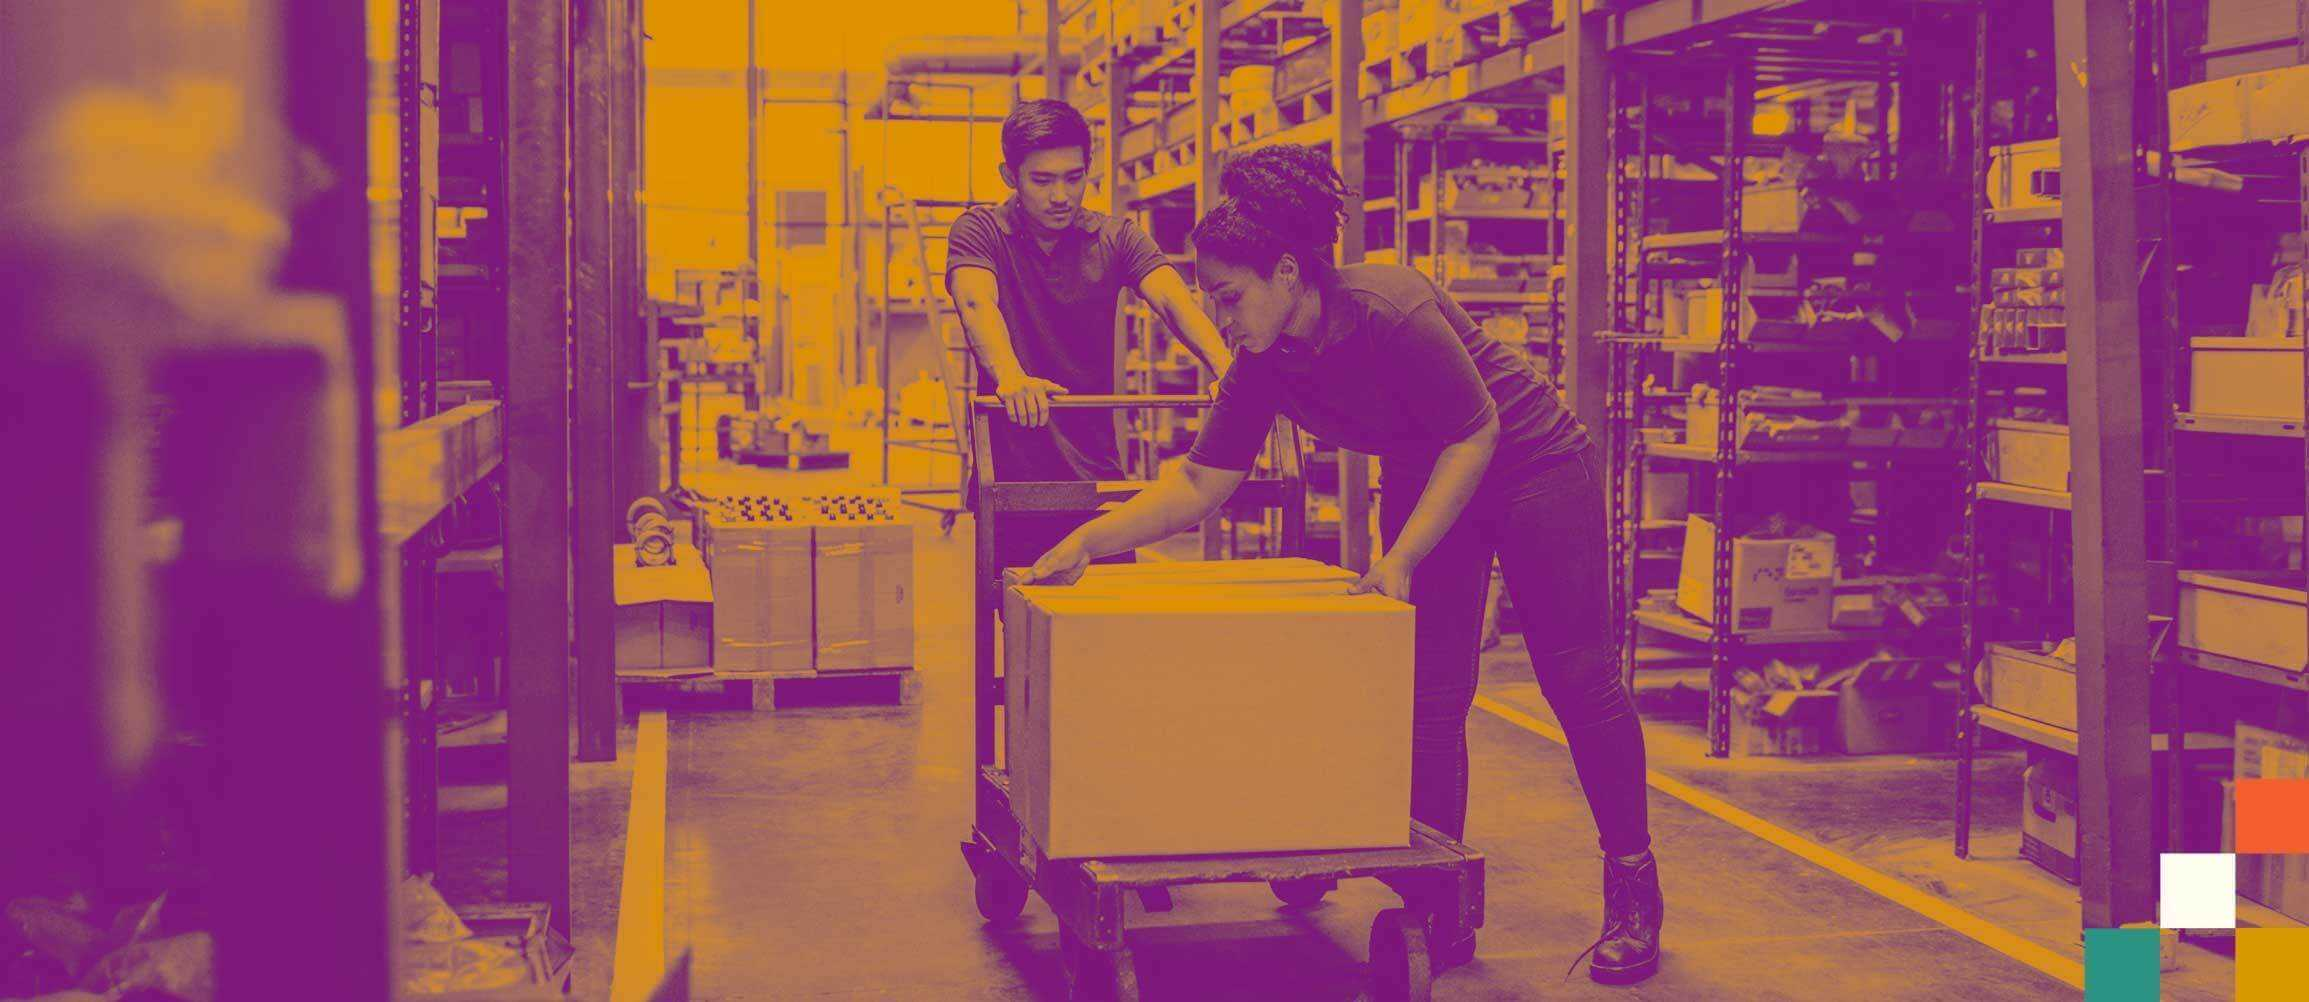 duotone workers in warehouse packing boxes